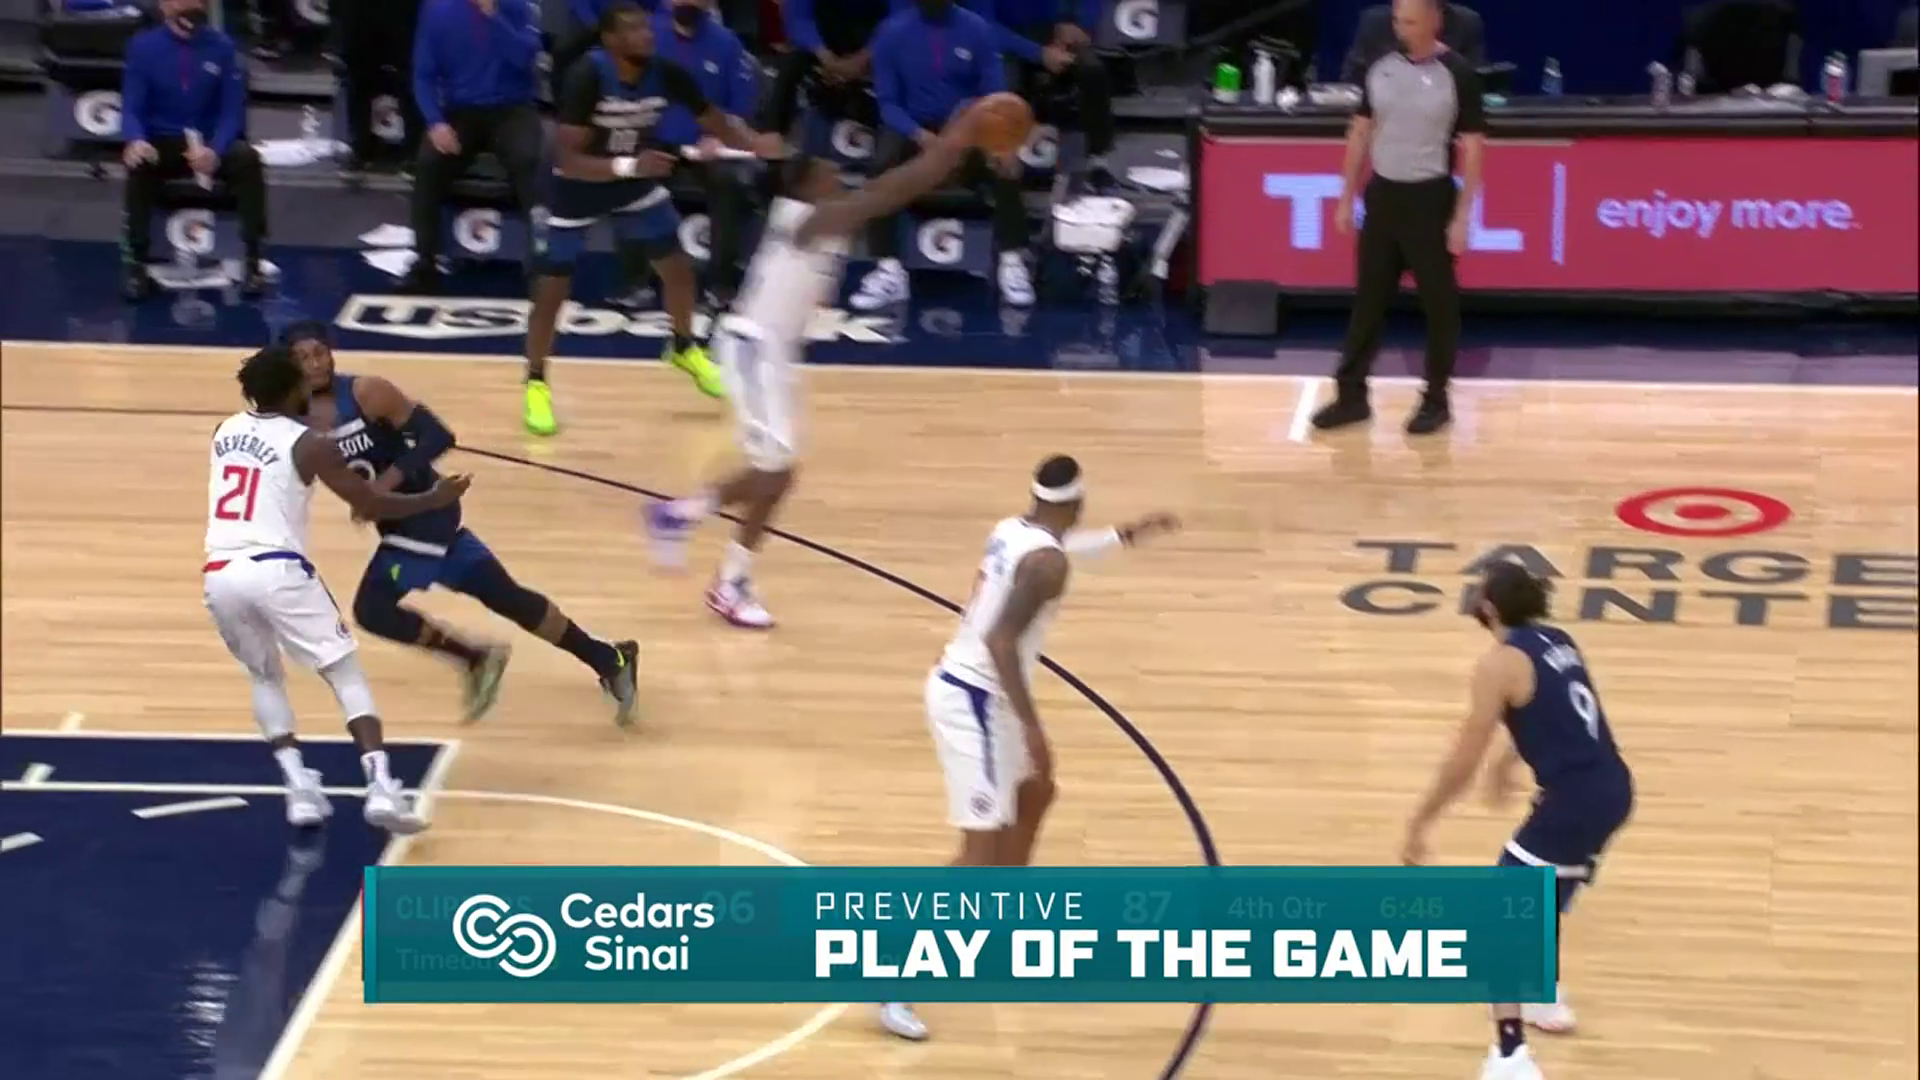 Cedars-Sinai Preventive Play of the Game | Clippers vs Timberwolves (2.10.21)